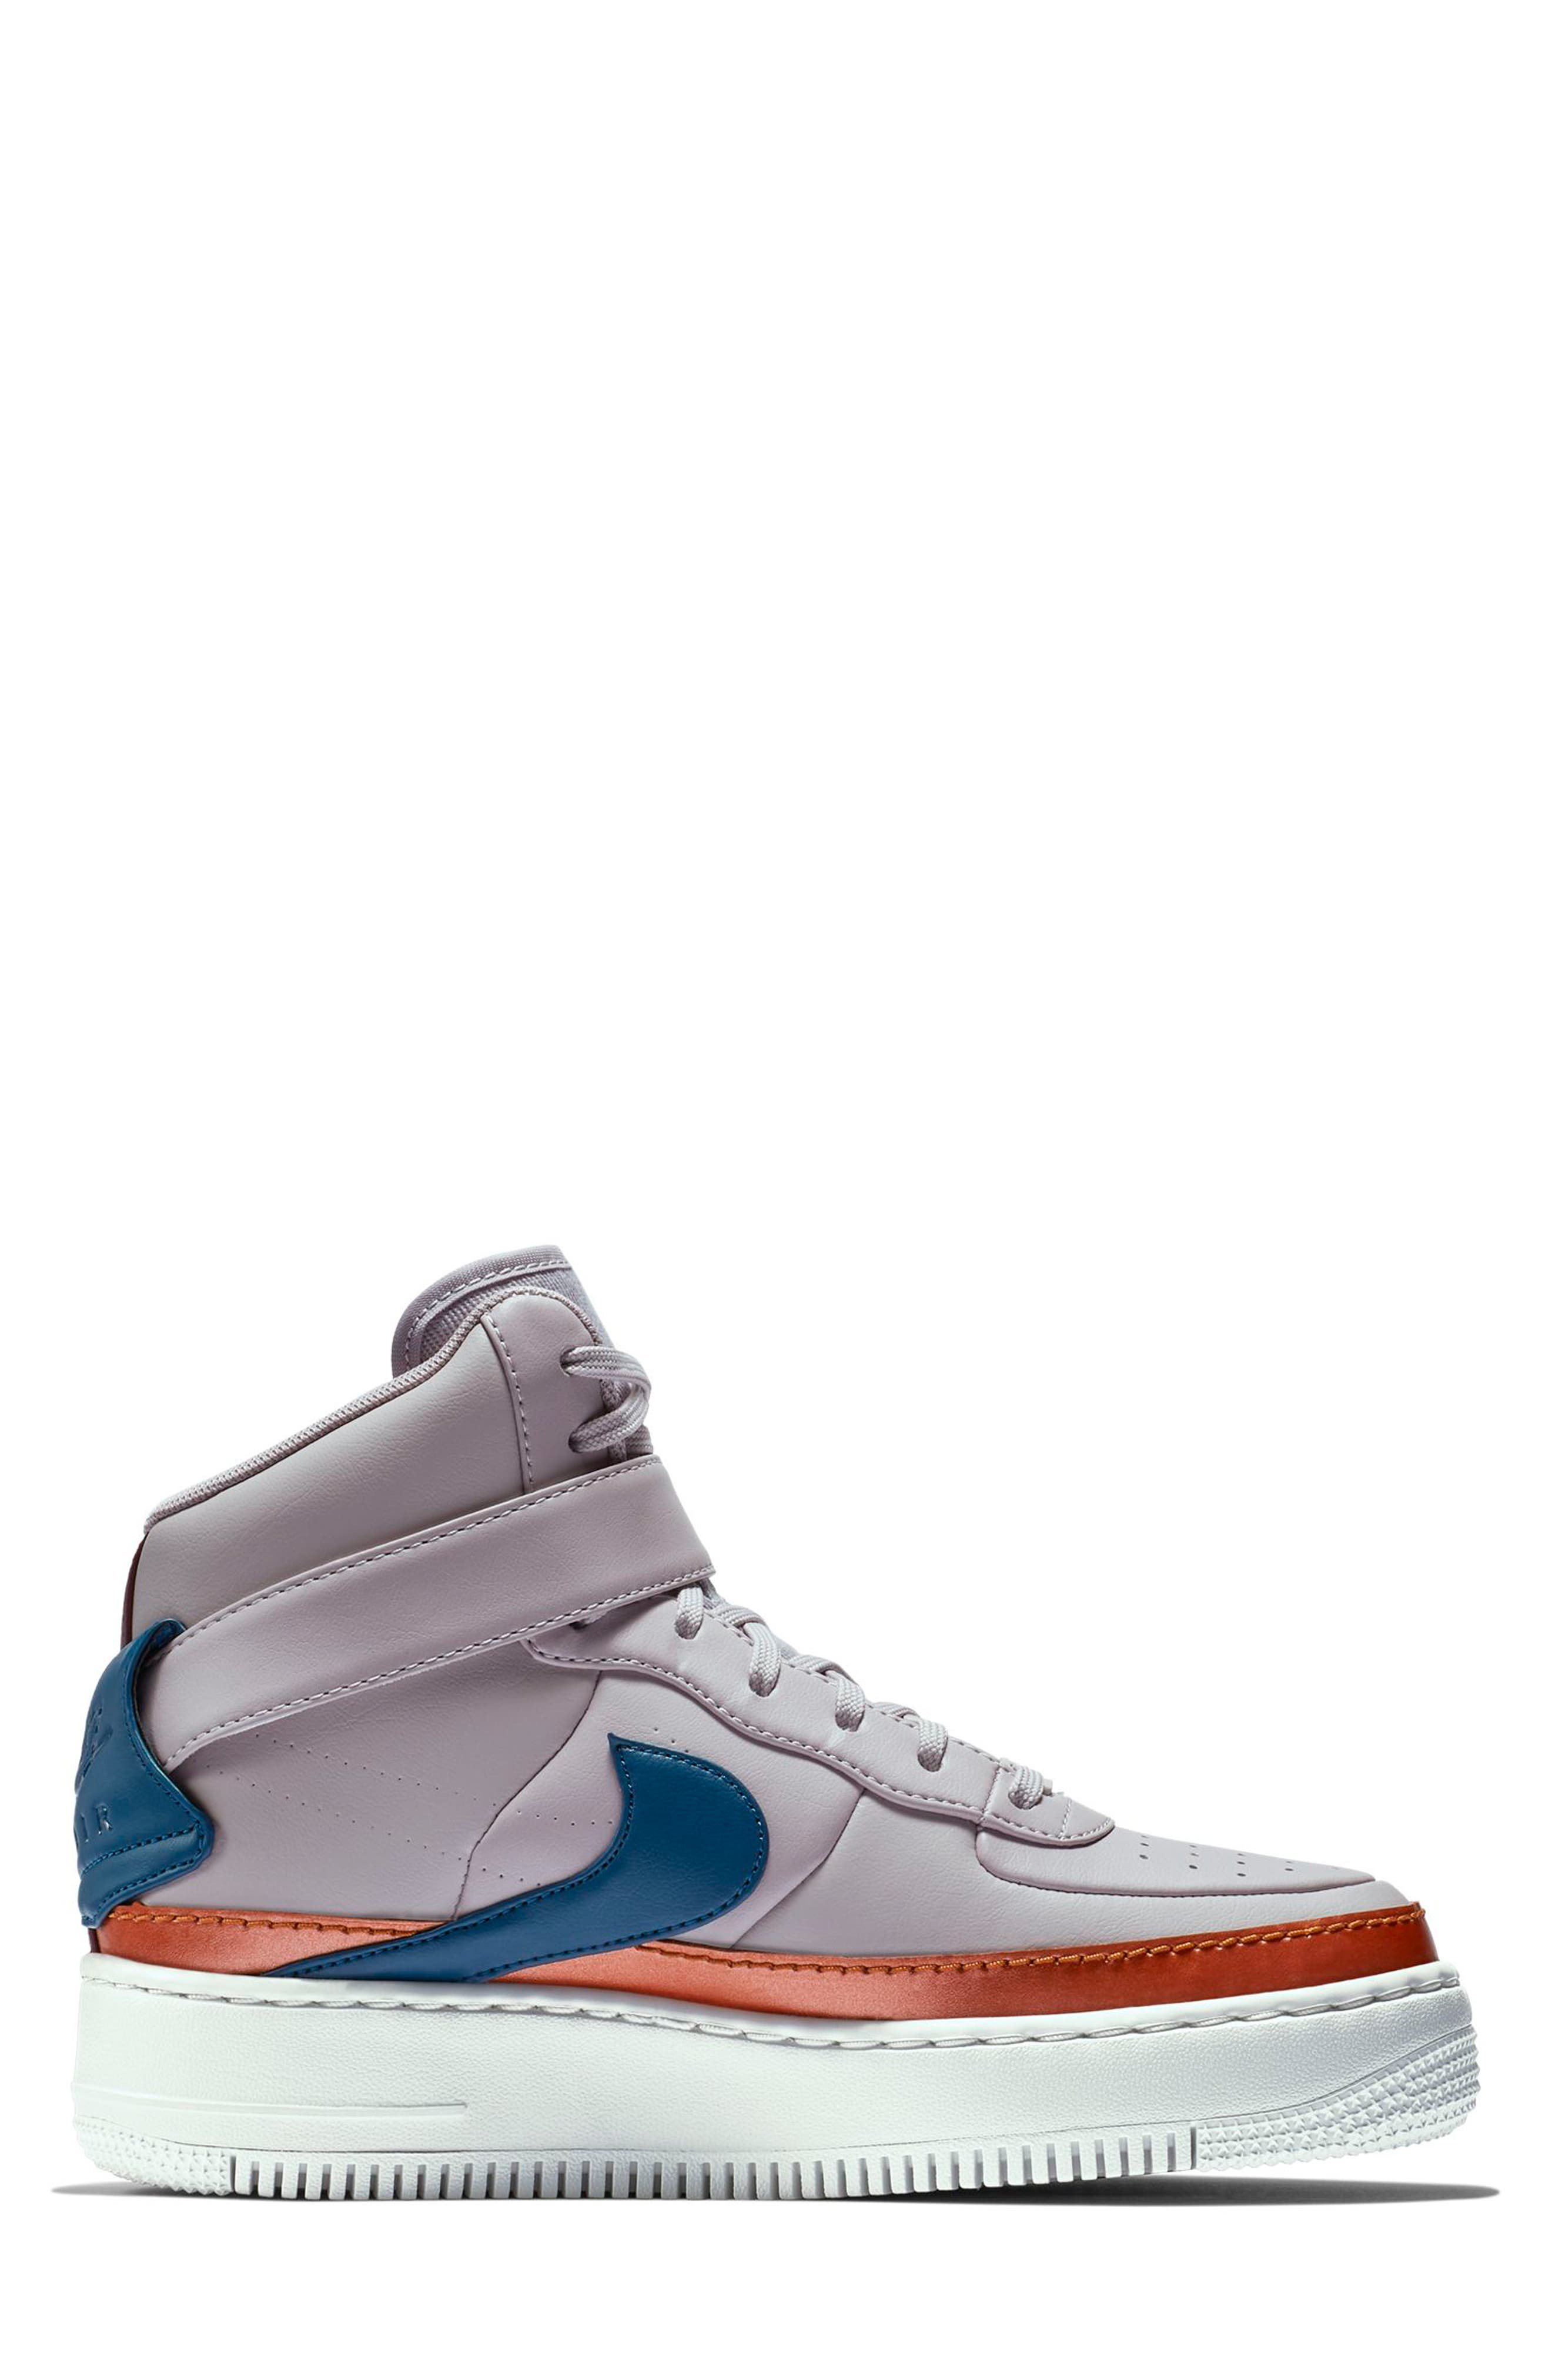 NIKE, Air Force 1 Jester High XX Sneaker, Alternate thumbnail 6, color, 500